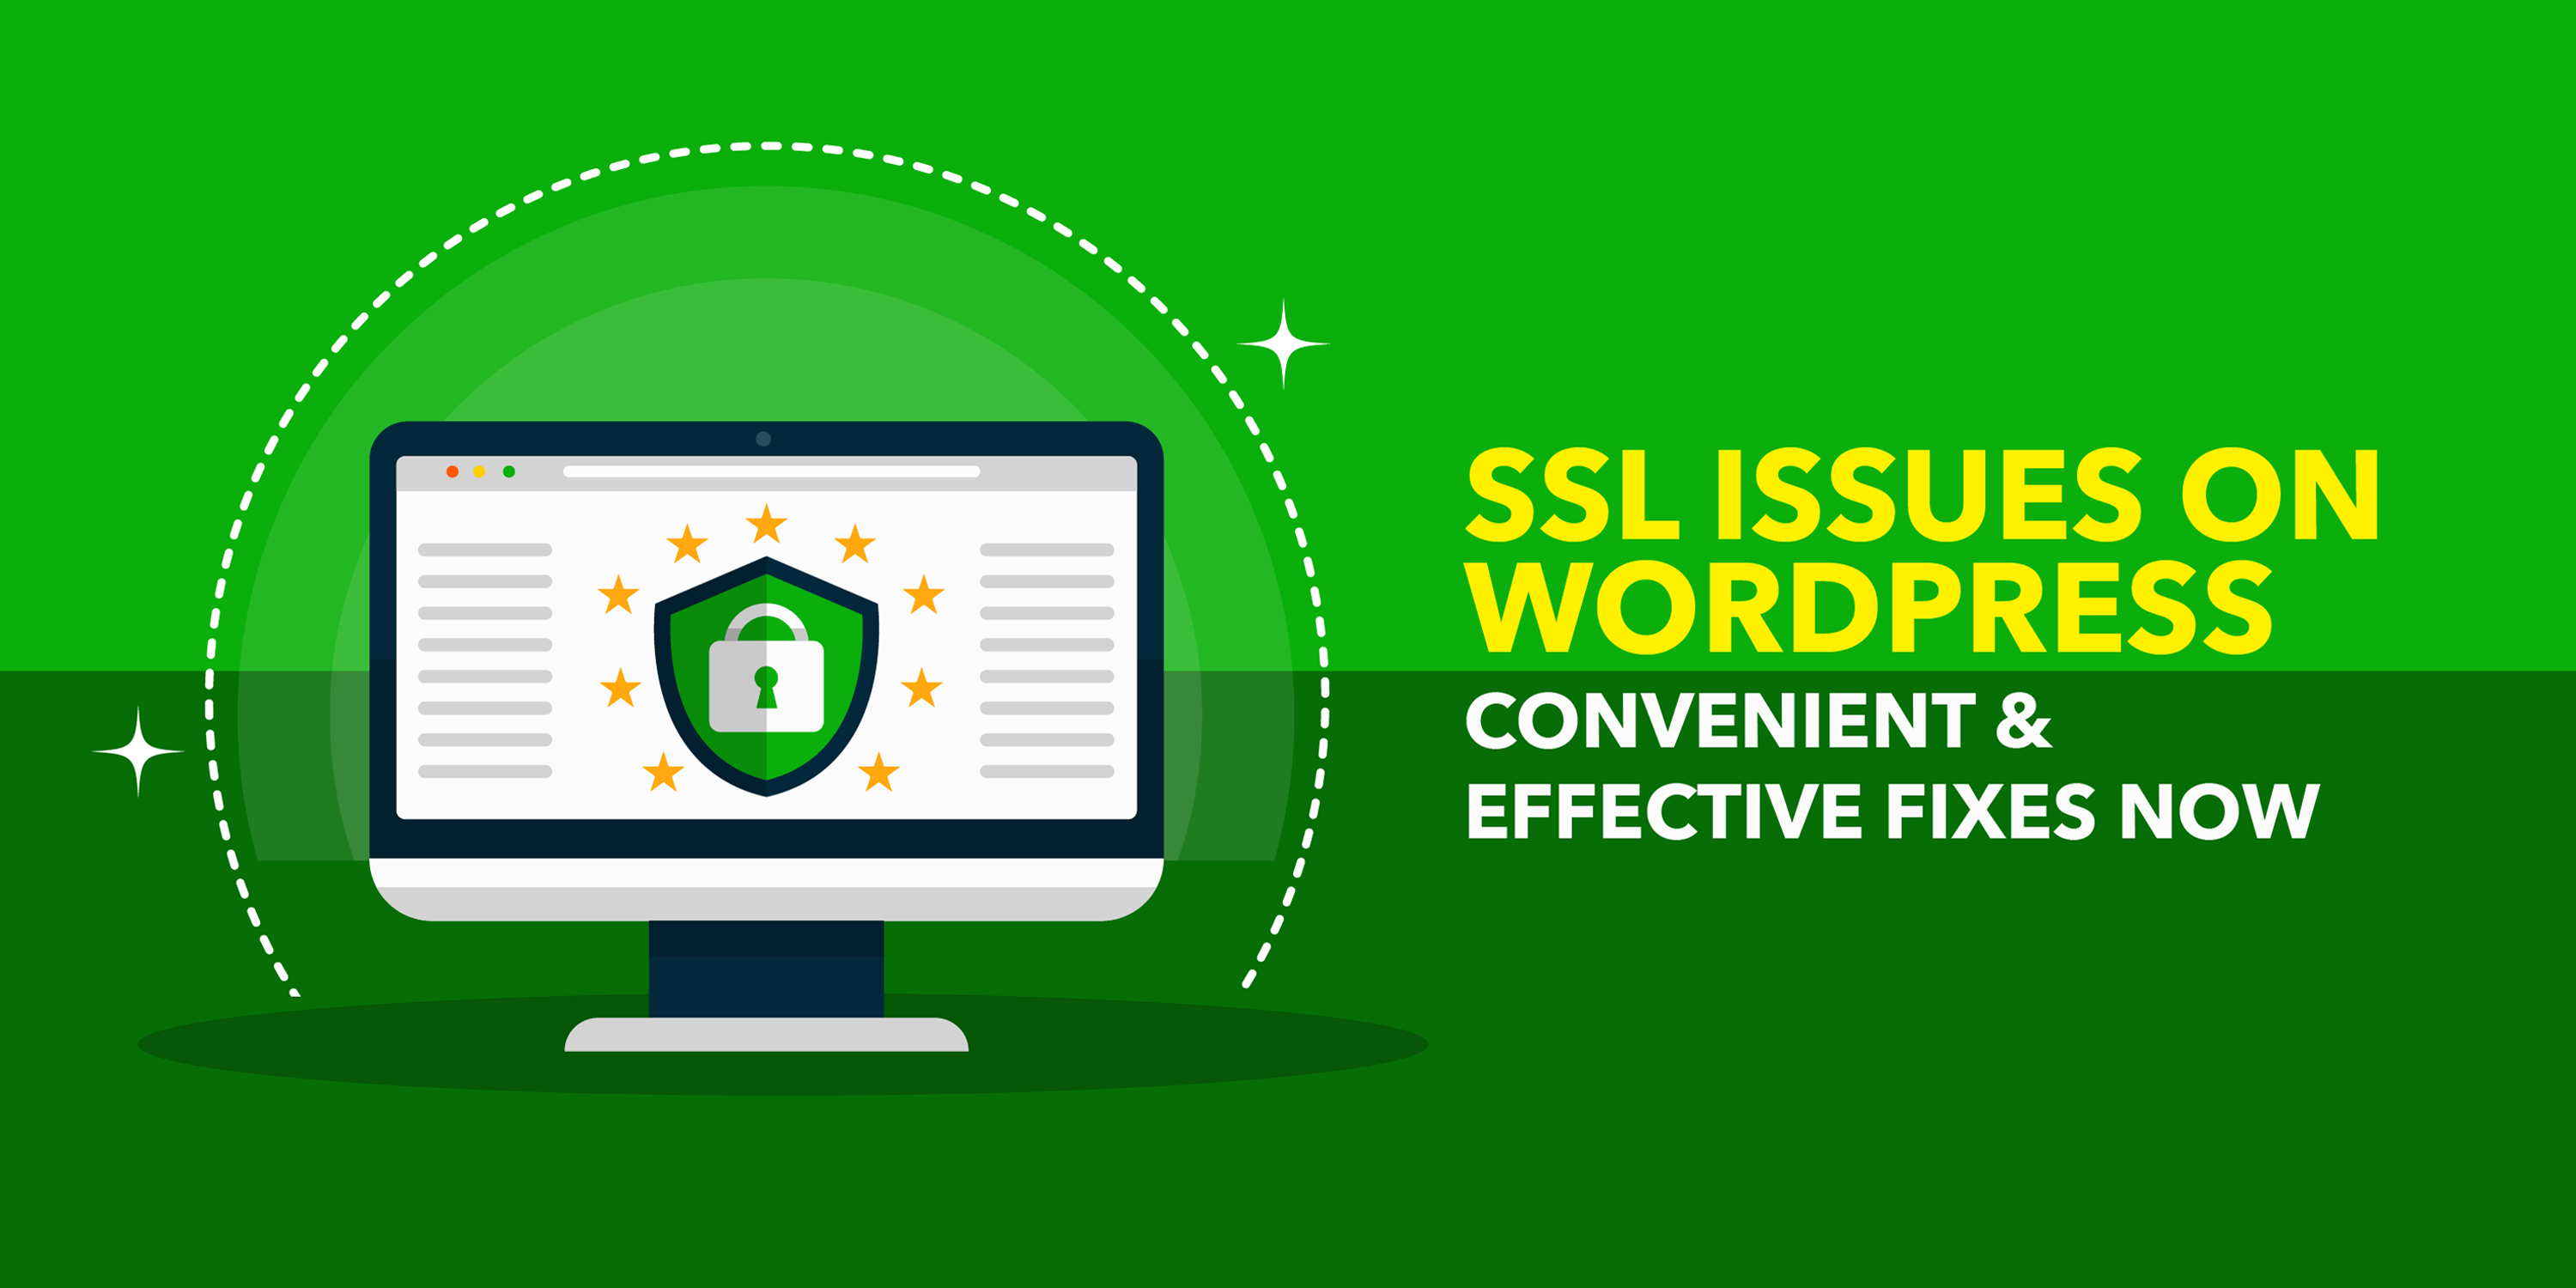 SSL Issues On WordPress: Convenient & Effective Fixes